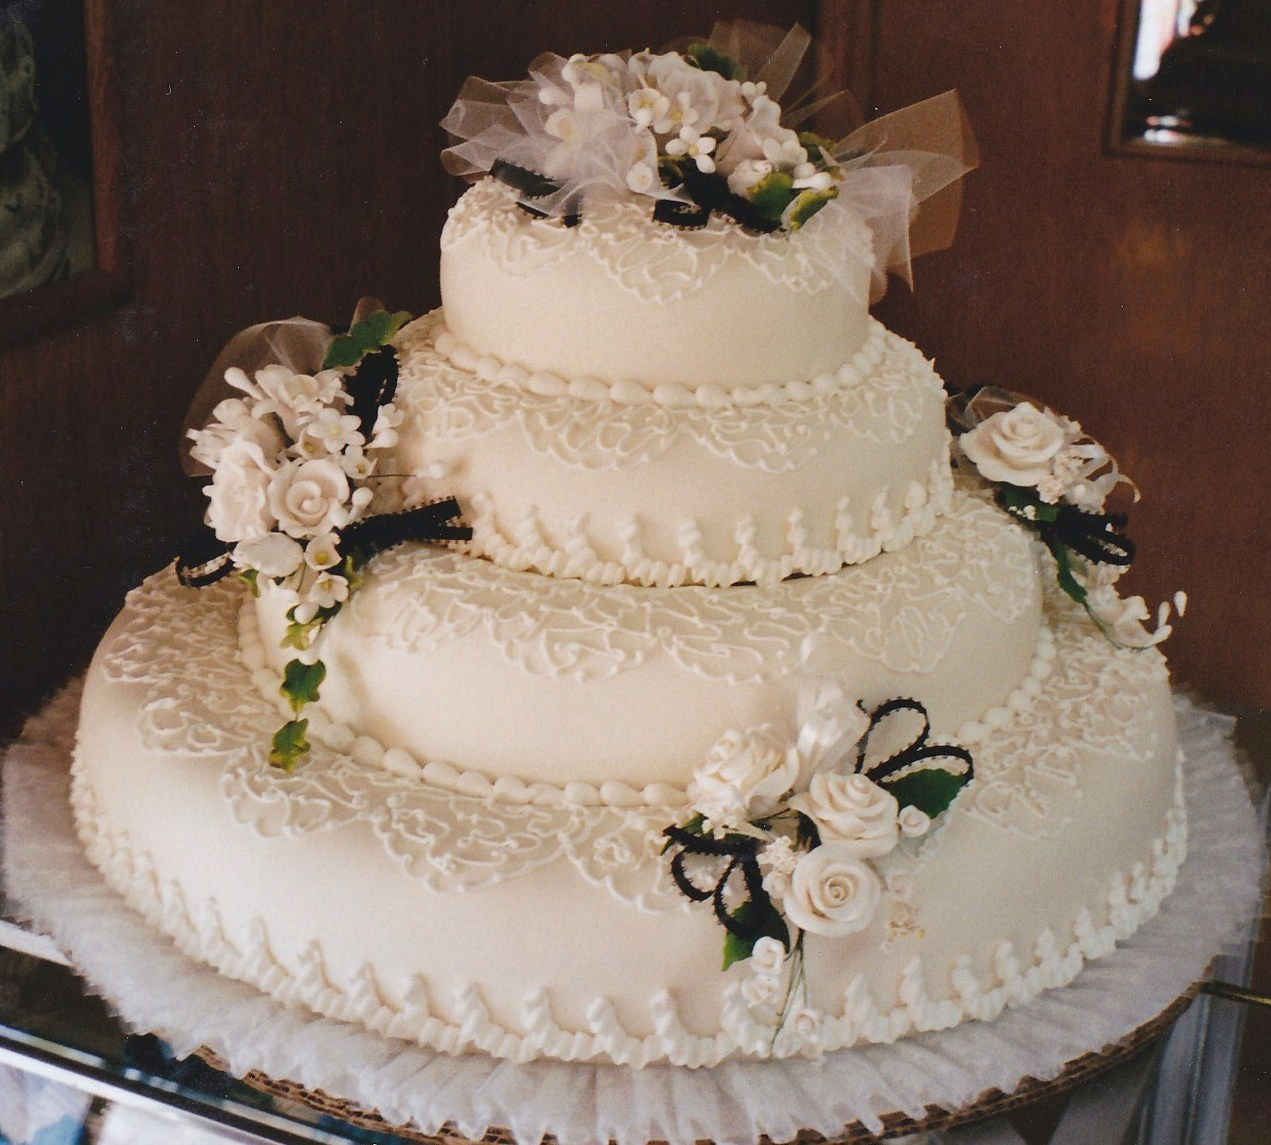 Australian Lace Cakes Are Covered In Rolled Fondant To Give A Satiny Background For The Delicate Trims Which Include Fine Patterns And Silken Ribbons